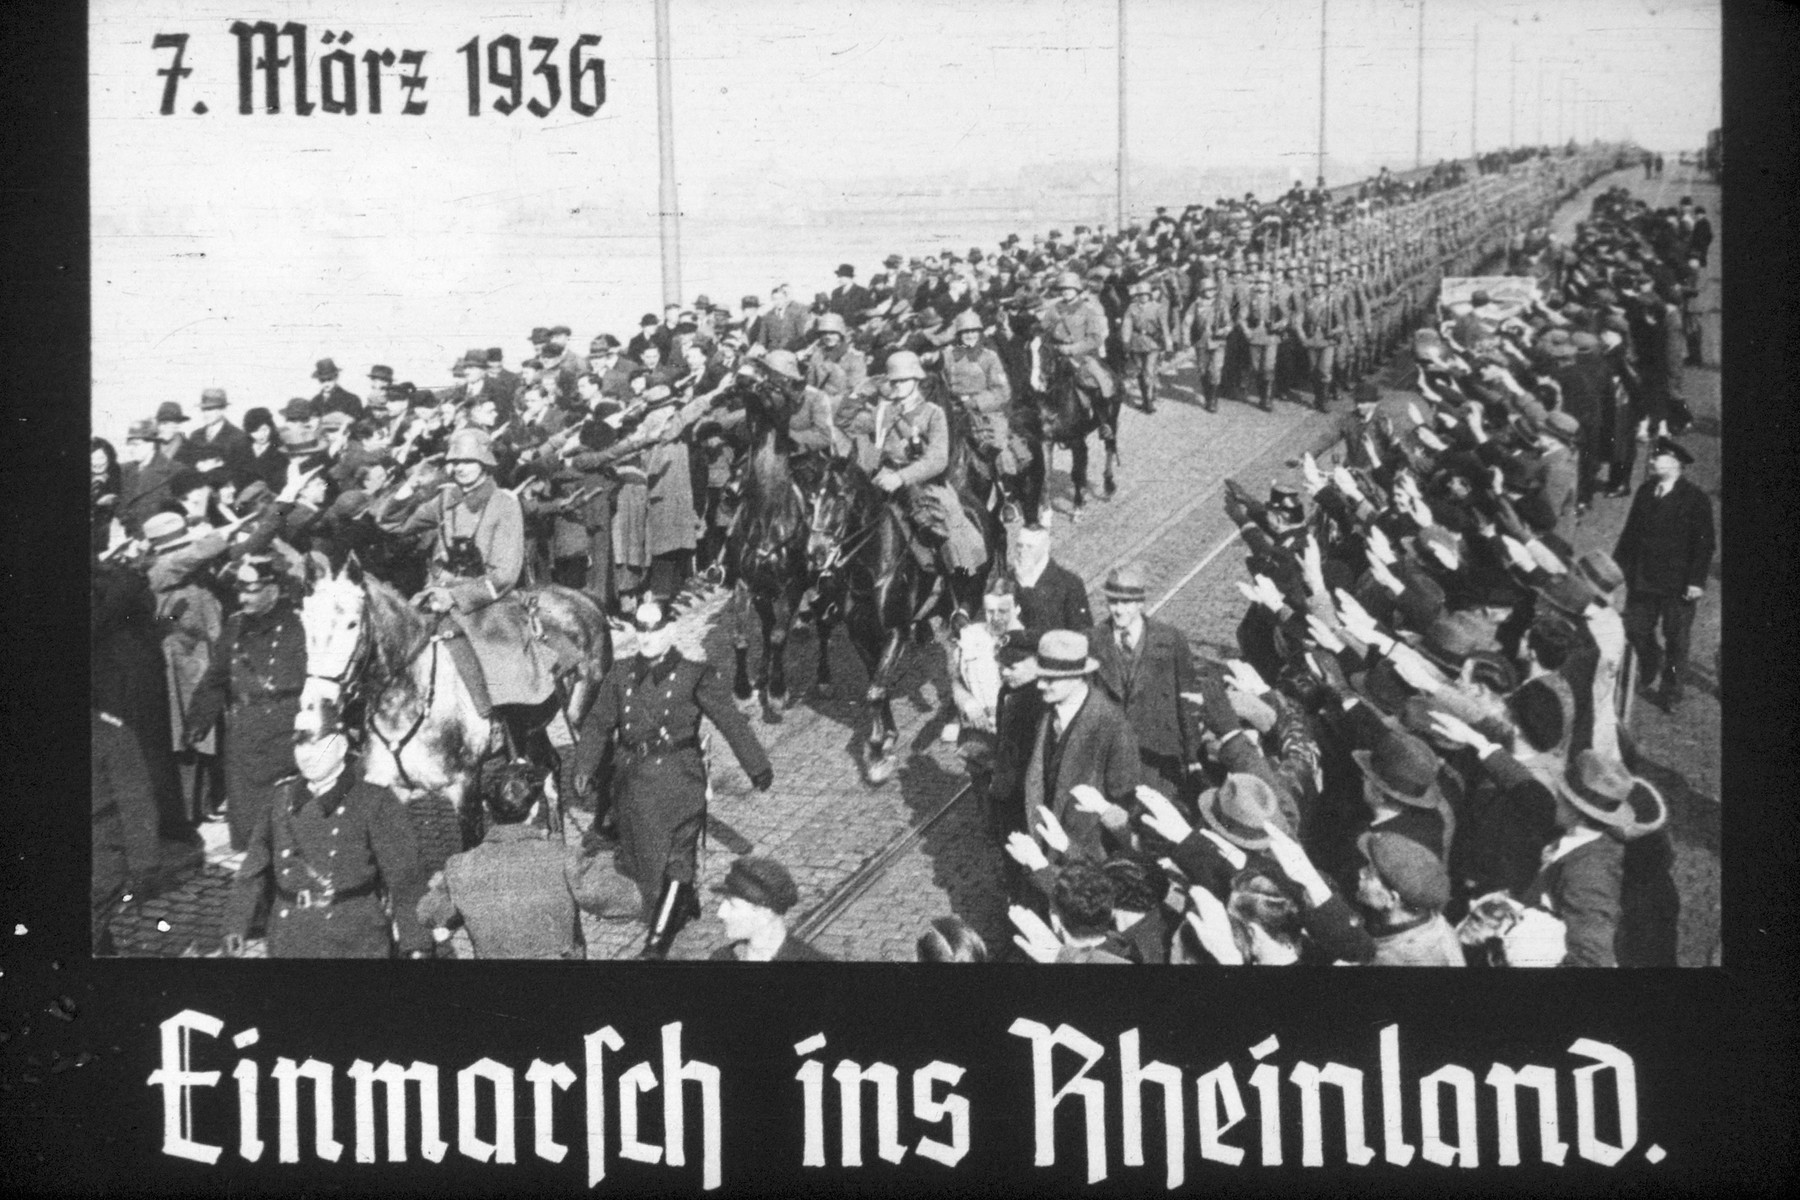 5th slide from a Hitler Youth slideshow about the aftermath of WWI, Versailles, how it was overcome and the rise of Nazism.  7. Marz 1936 Einmarsch ins Rheinland. // 7th March 1936 invasion of the Rhineland.